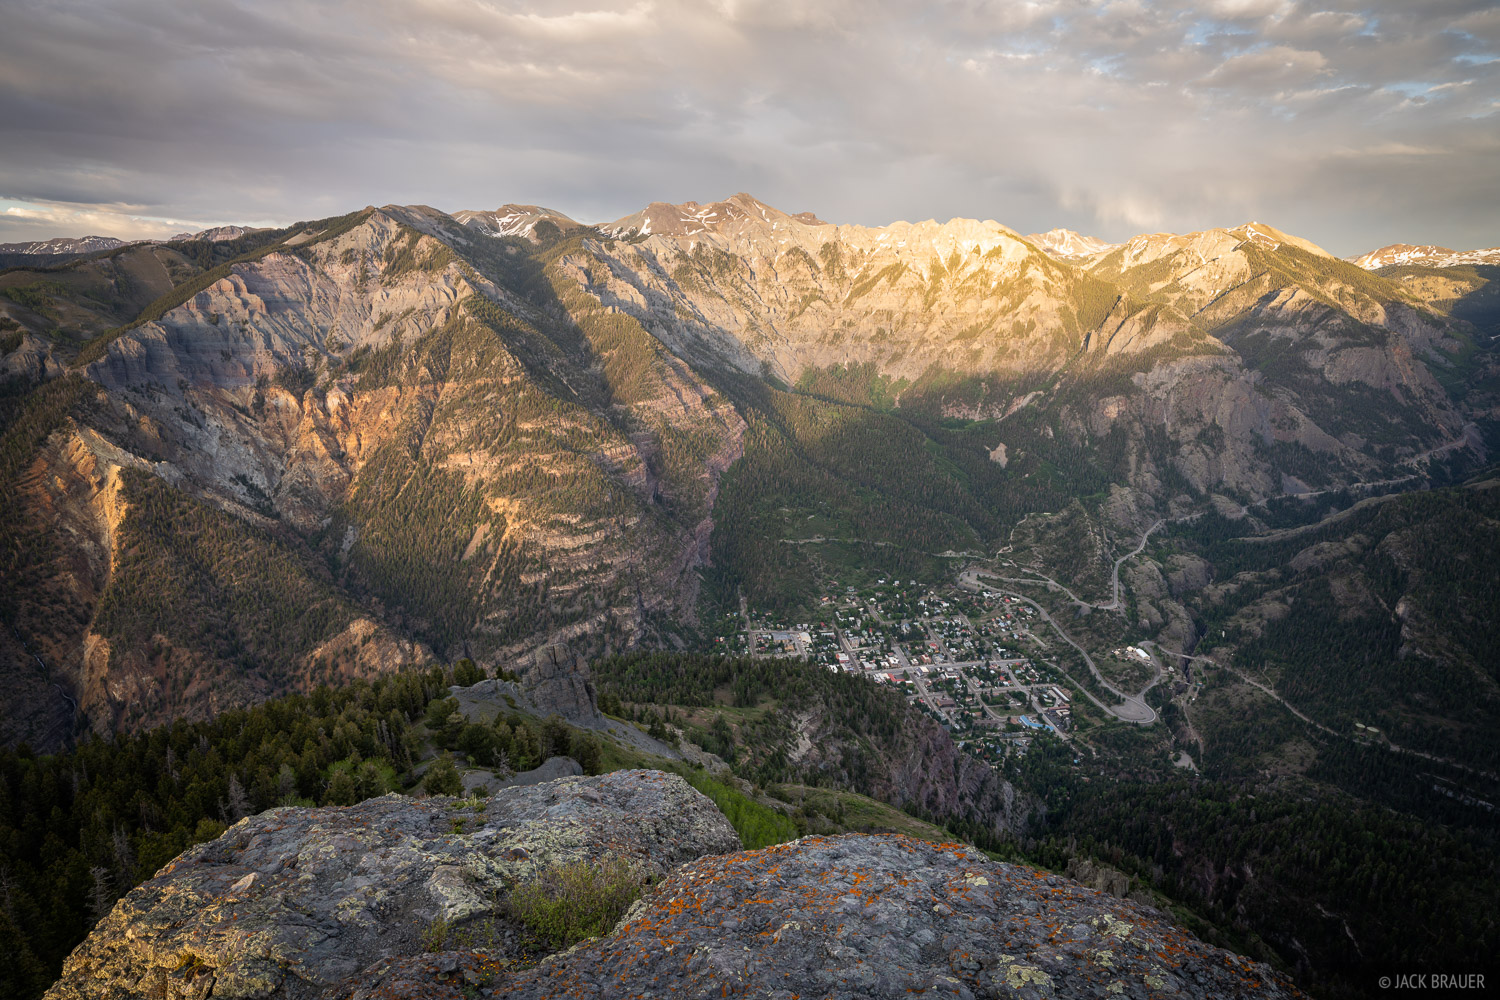 Colorado, Ouray, San Juan Mountains, Twin Peaks, Million Dollar Highway, sunset, photo